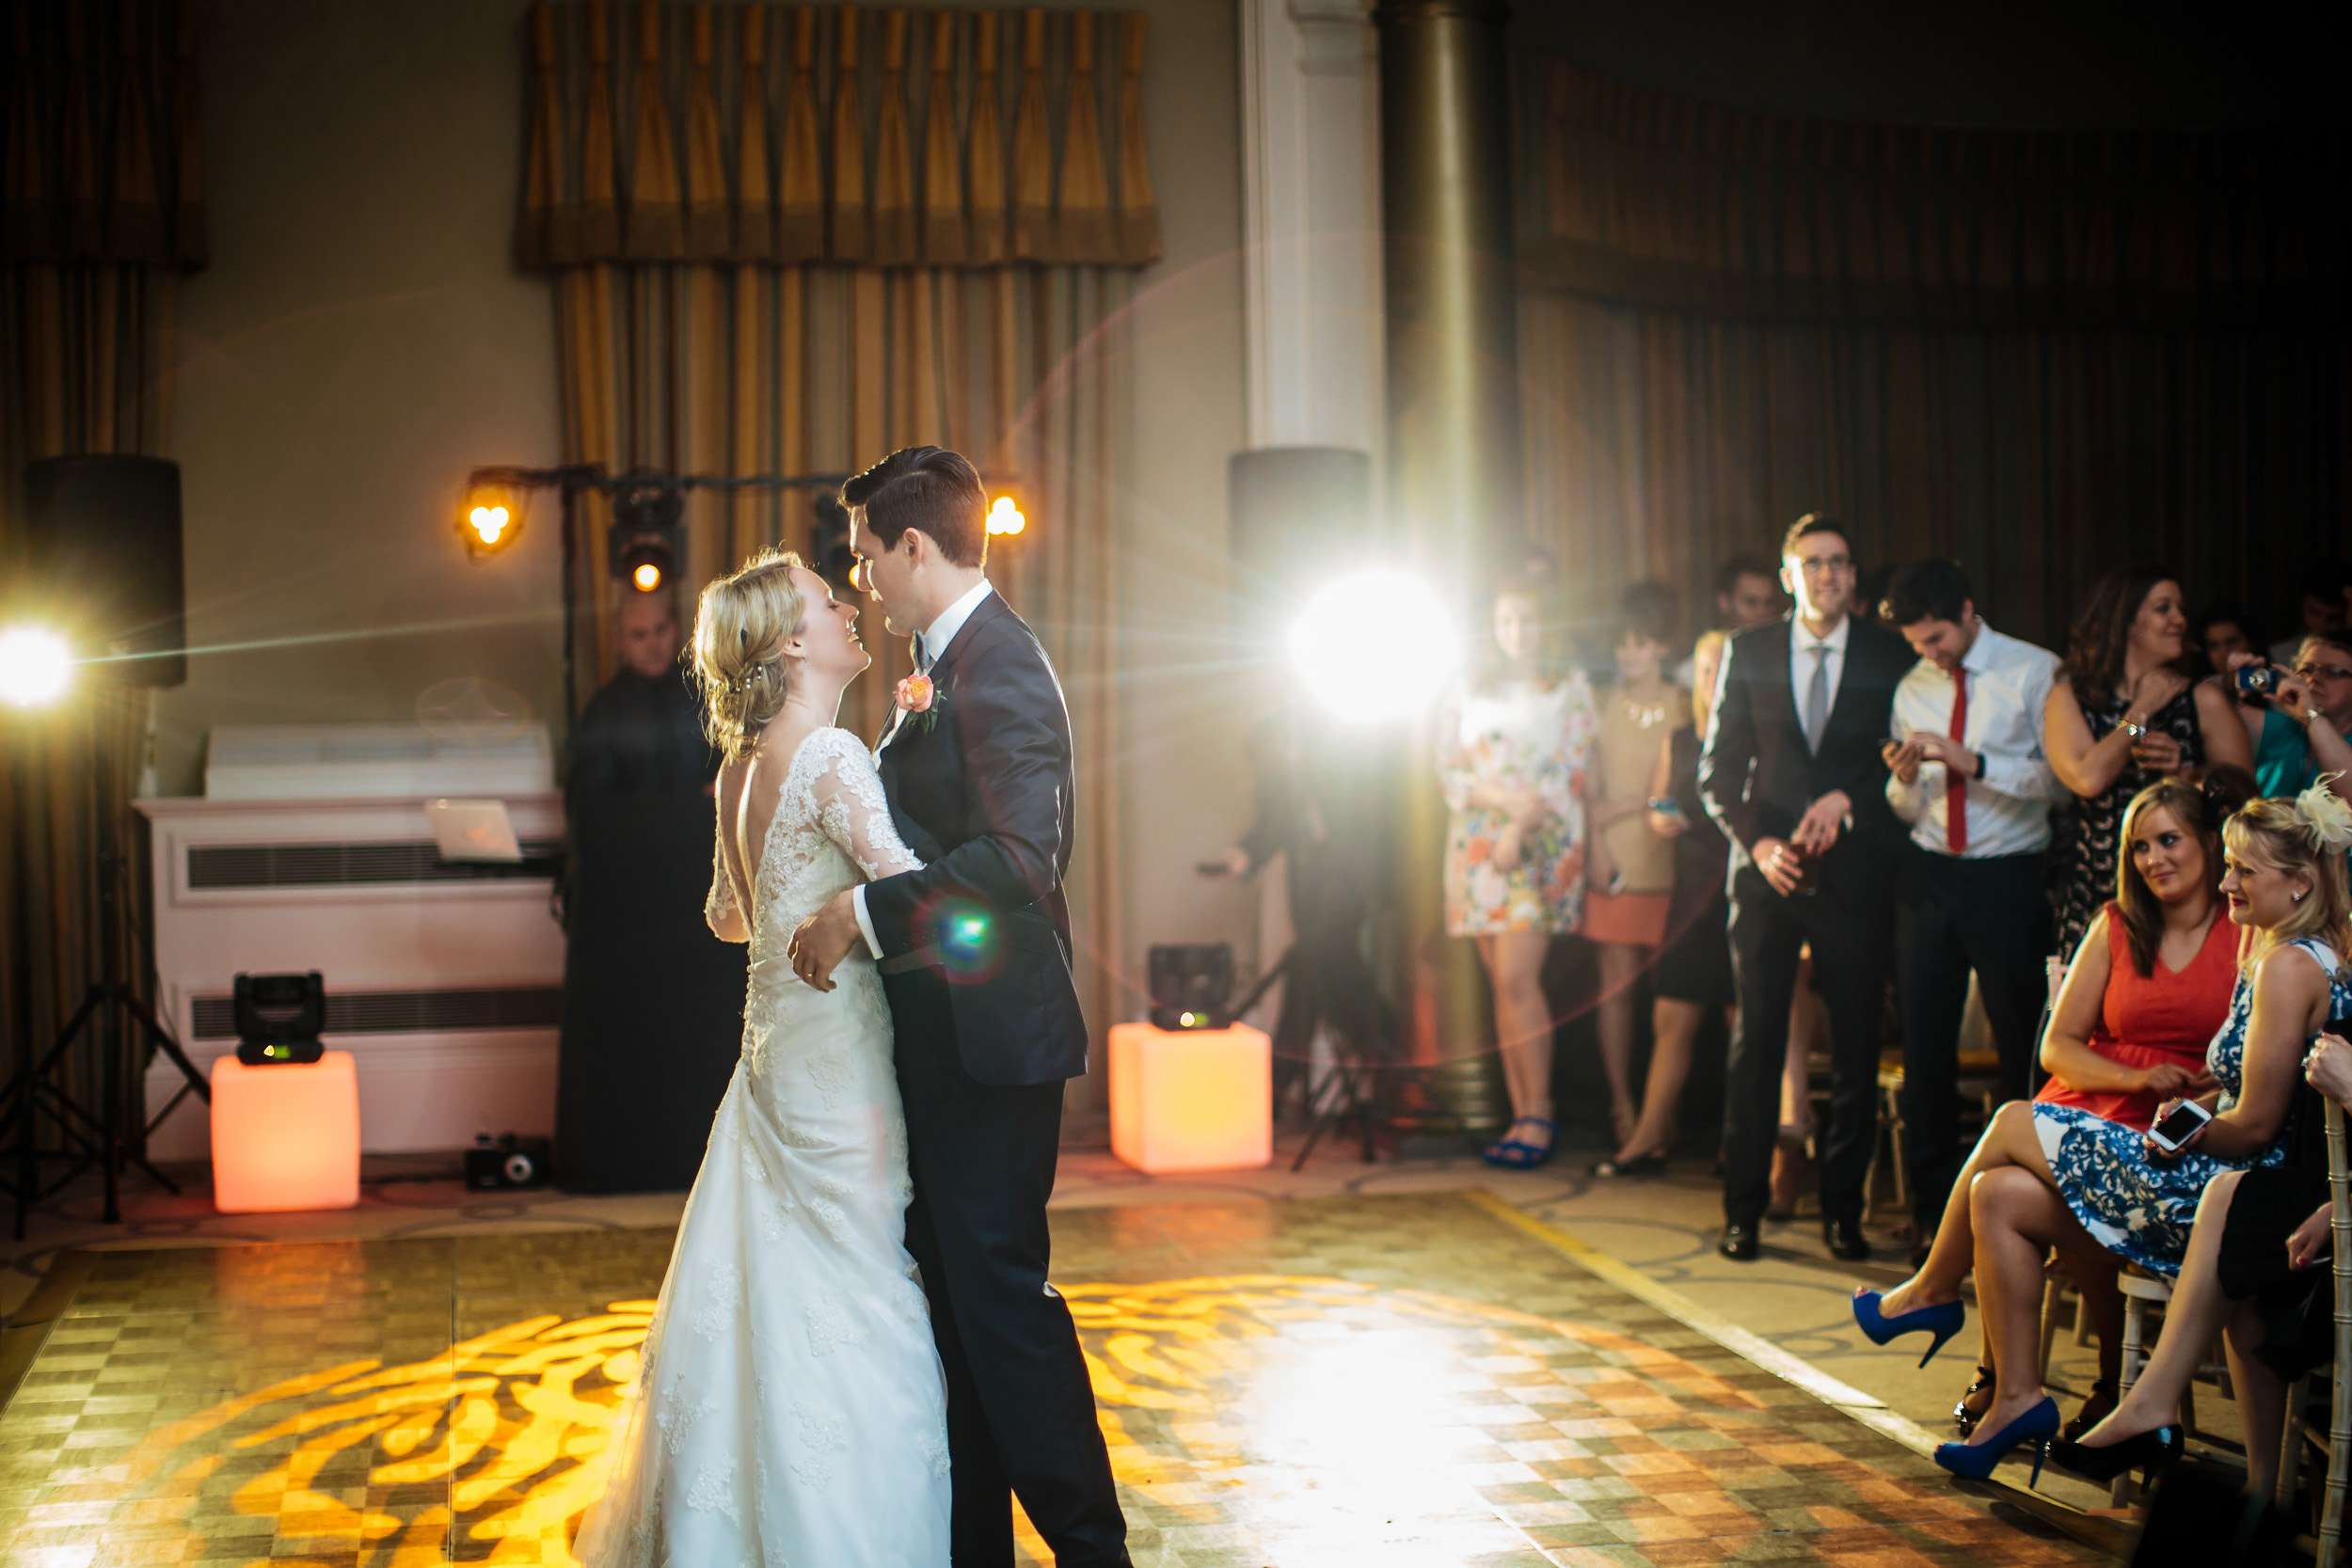 First Dance at a Rudding Park wedding in Harrogate